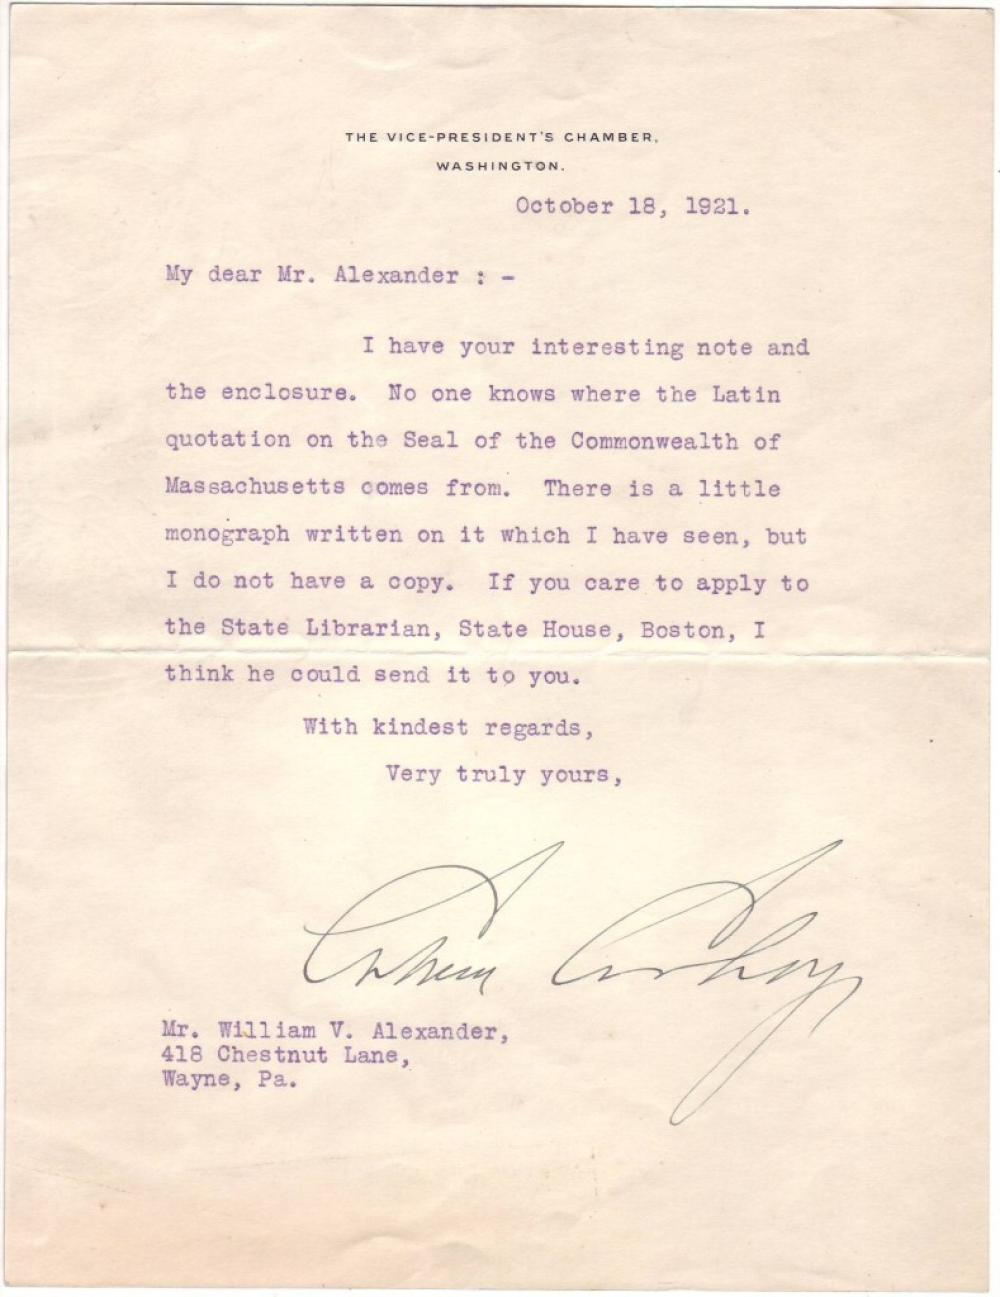 COOLIDGE, CALVIN. Typed Letter Signed, as Vice President, to William V. Alexander,